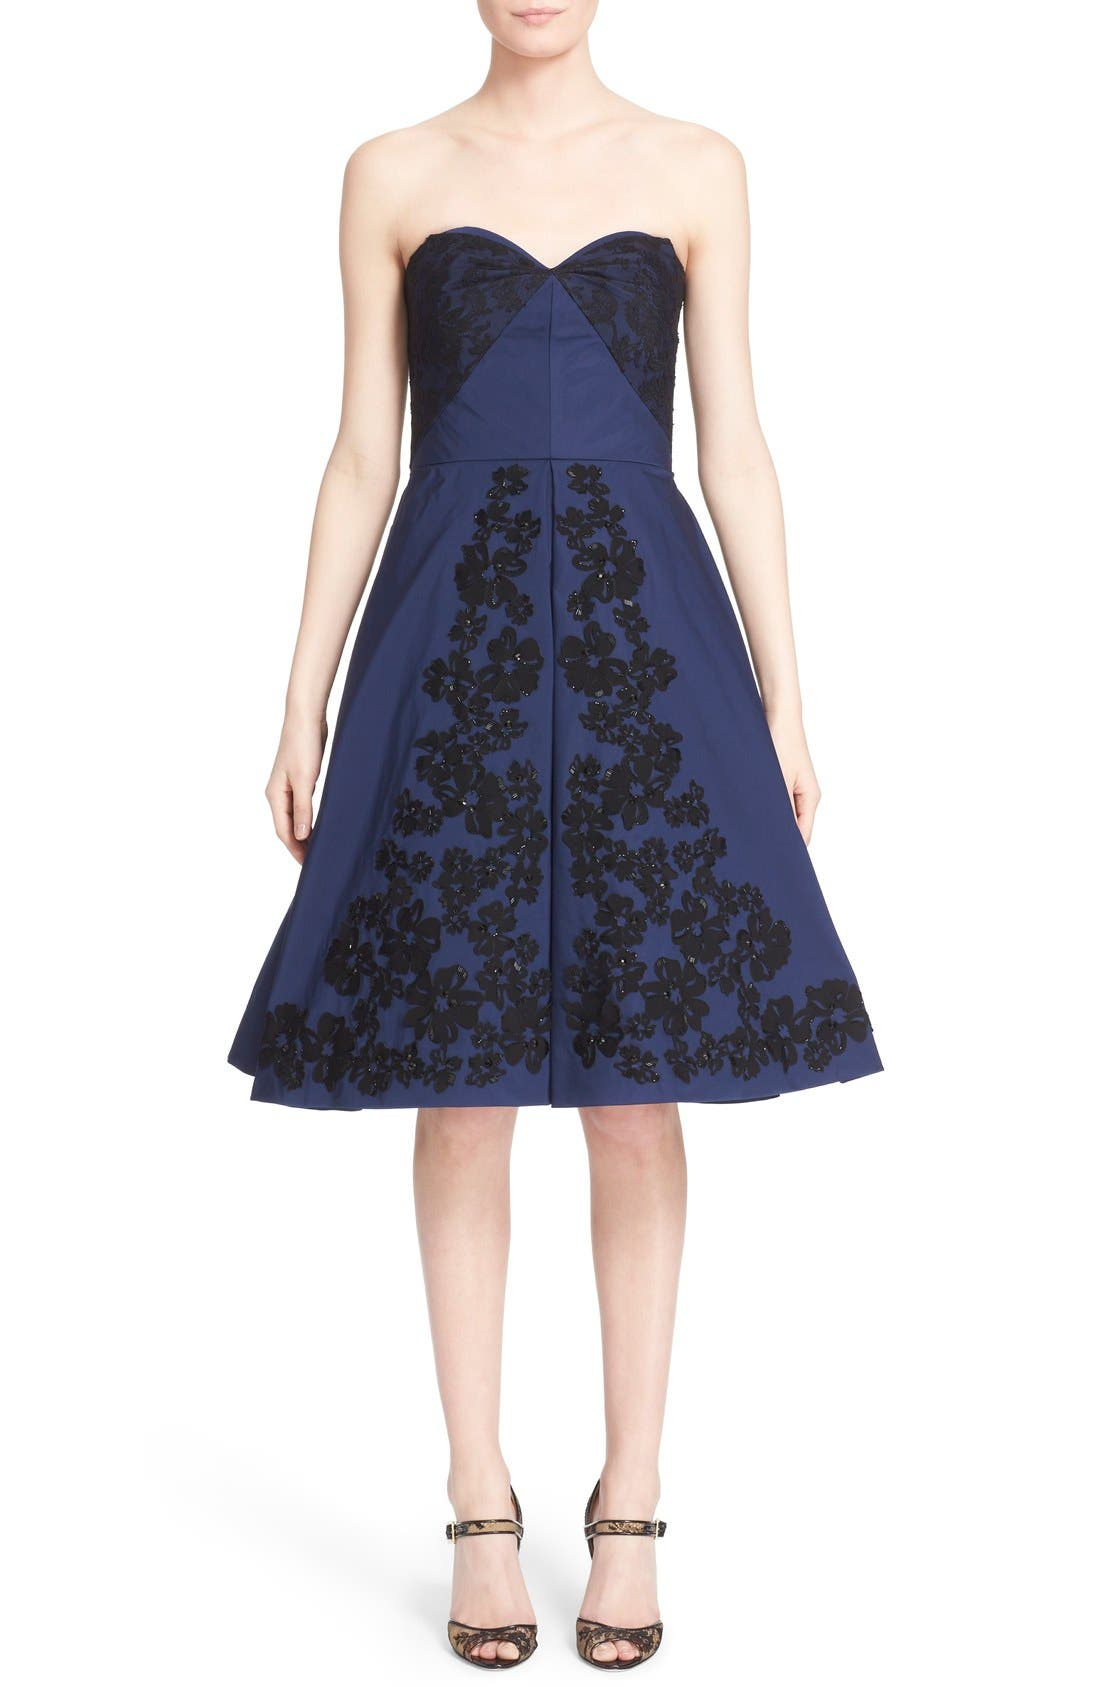 Main Image - Oscar de la Renta Floral Embellished Strapless Fit & Flare Dress